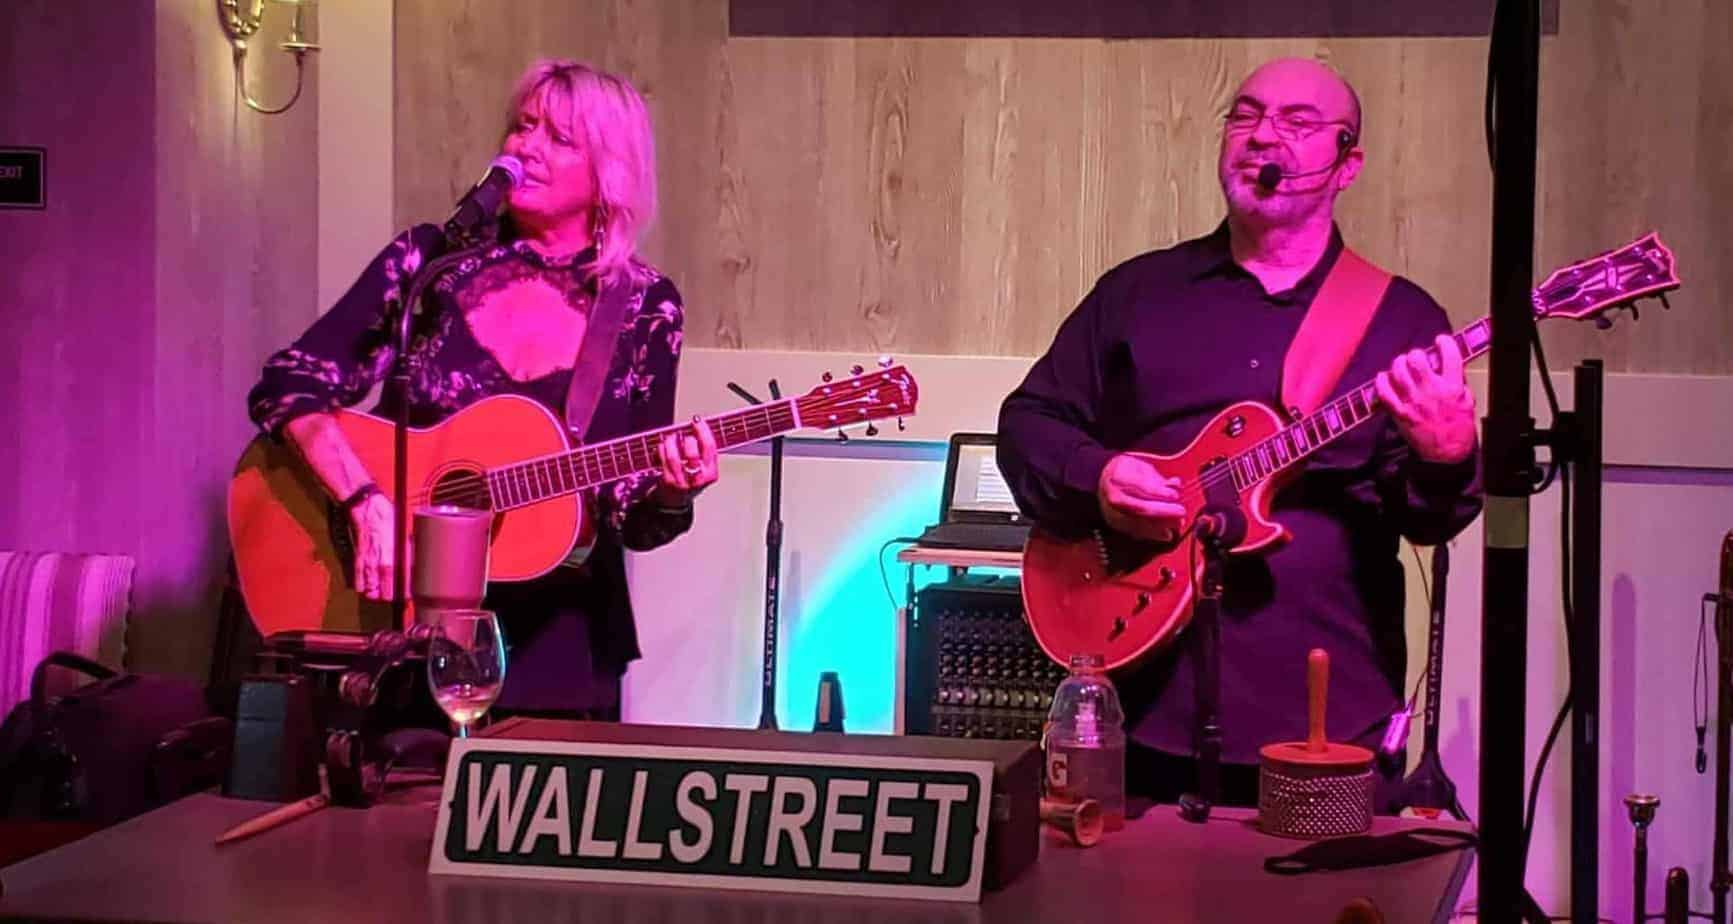 Wallstreet - Tammy Lynn and Rodney at Draft House